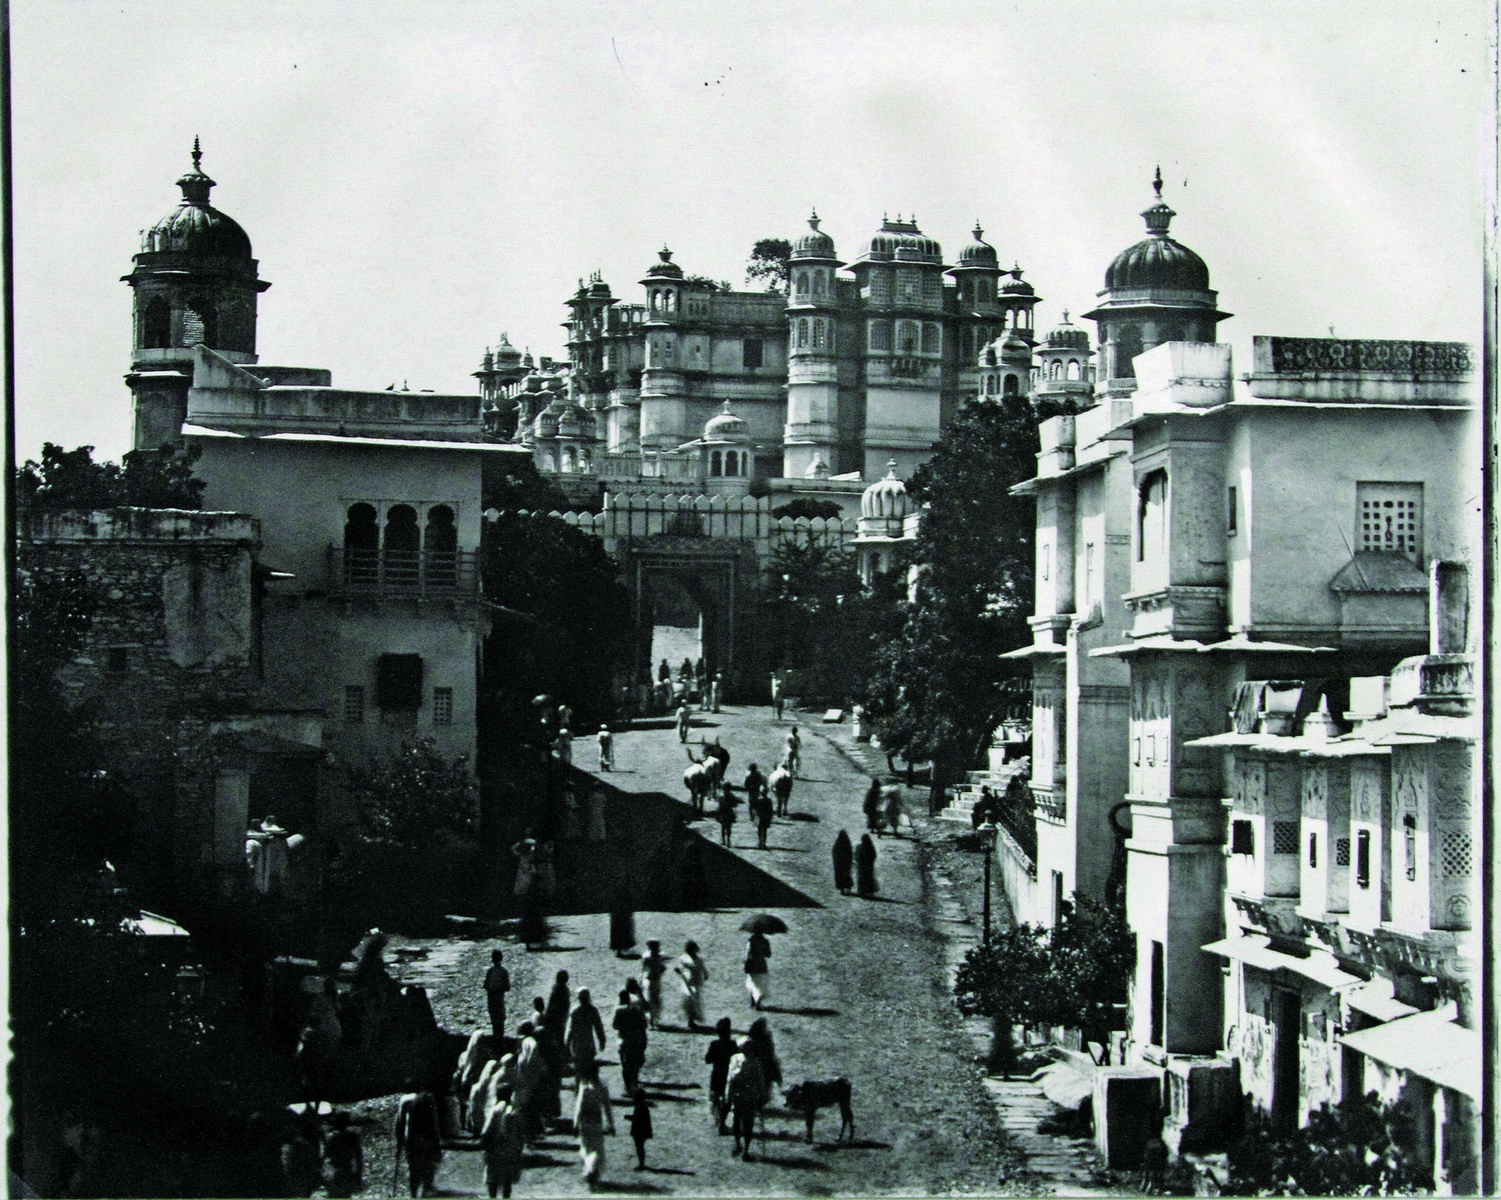 Badi Pol, The City Palace, Udaipur, c. 1900